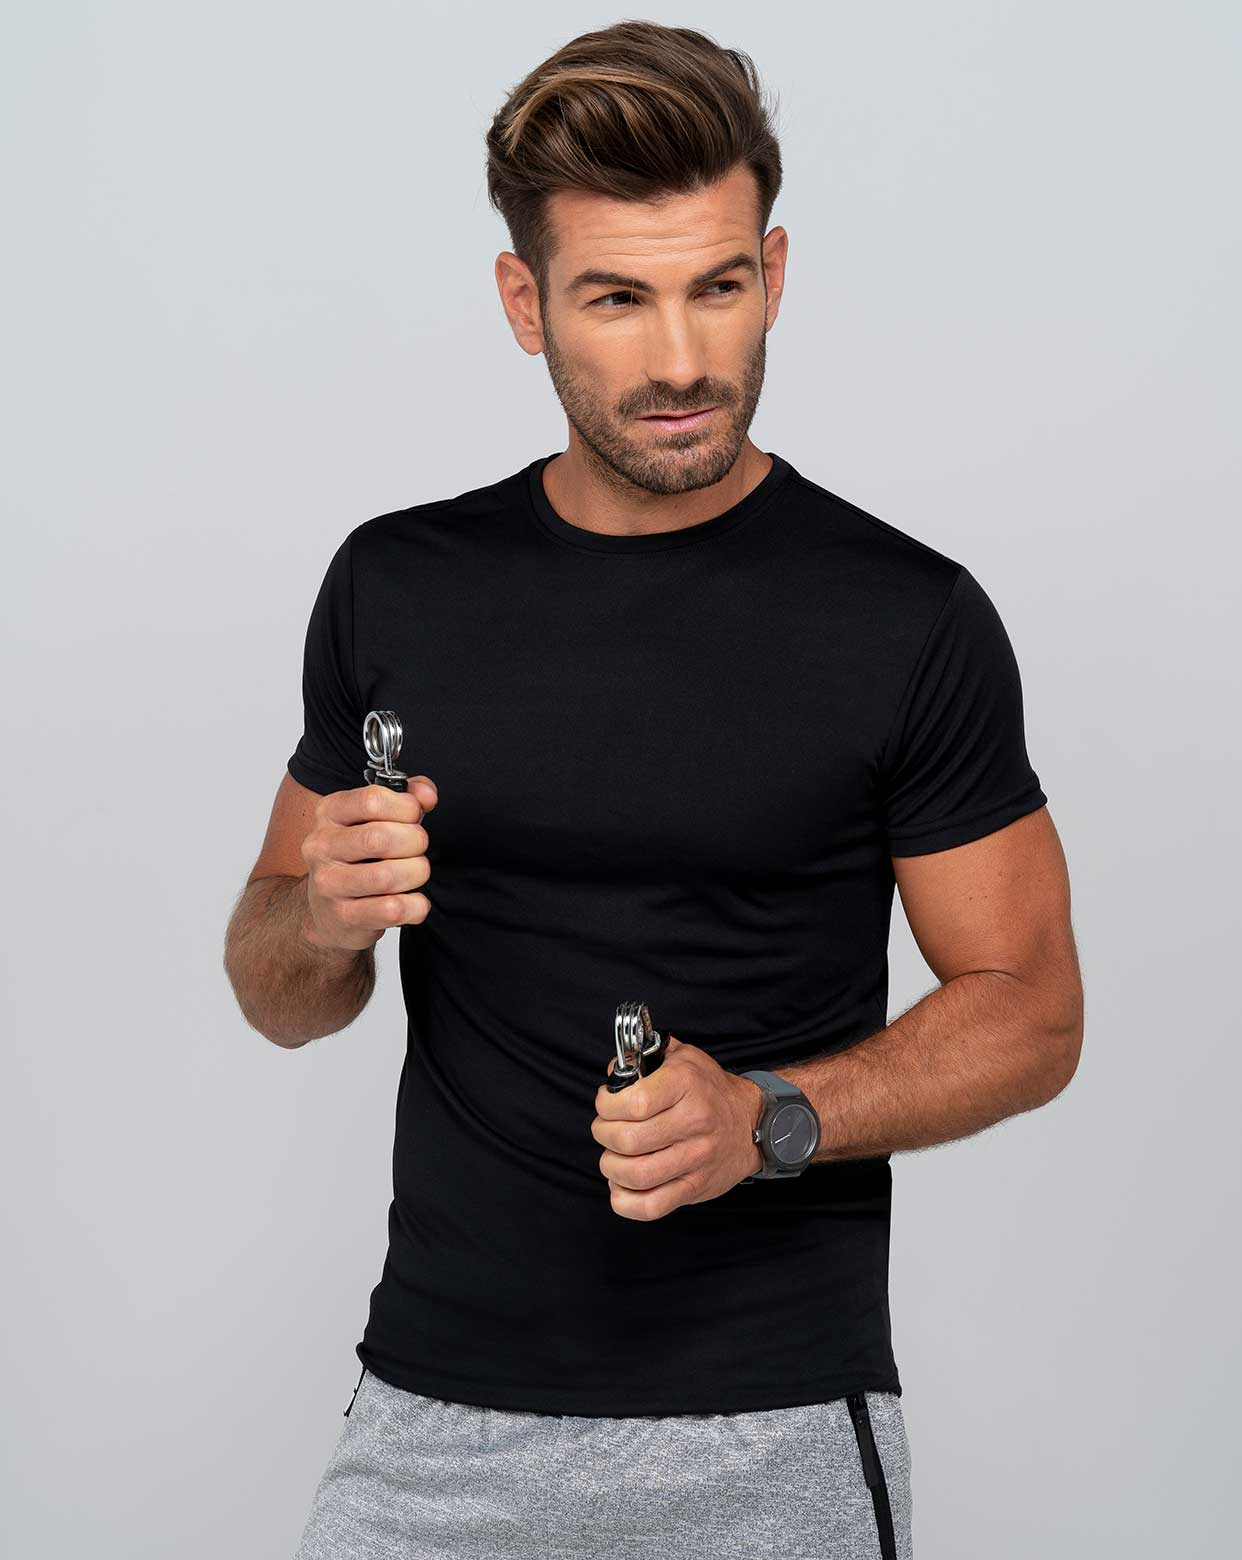 Man Regular Sport T-Shirt  - SPORTRGLM